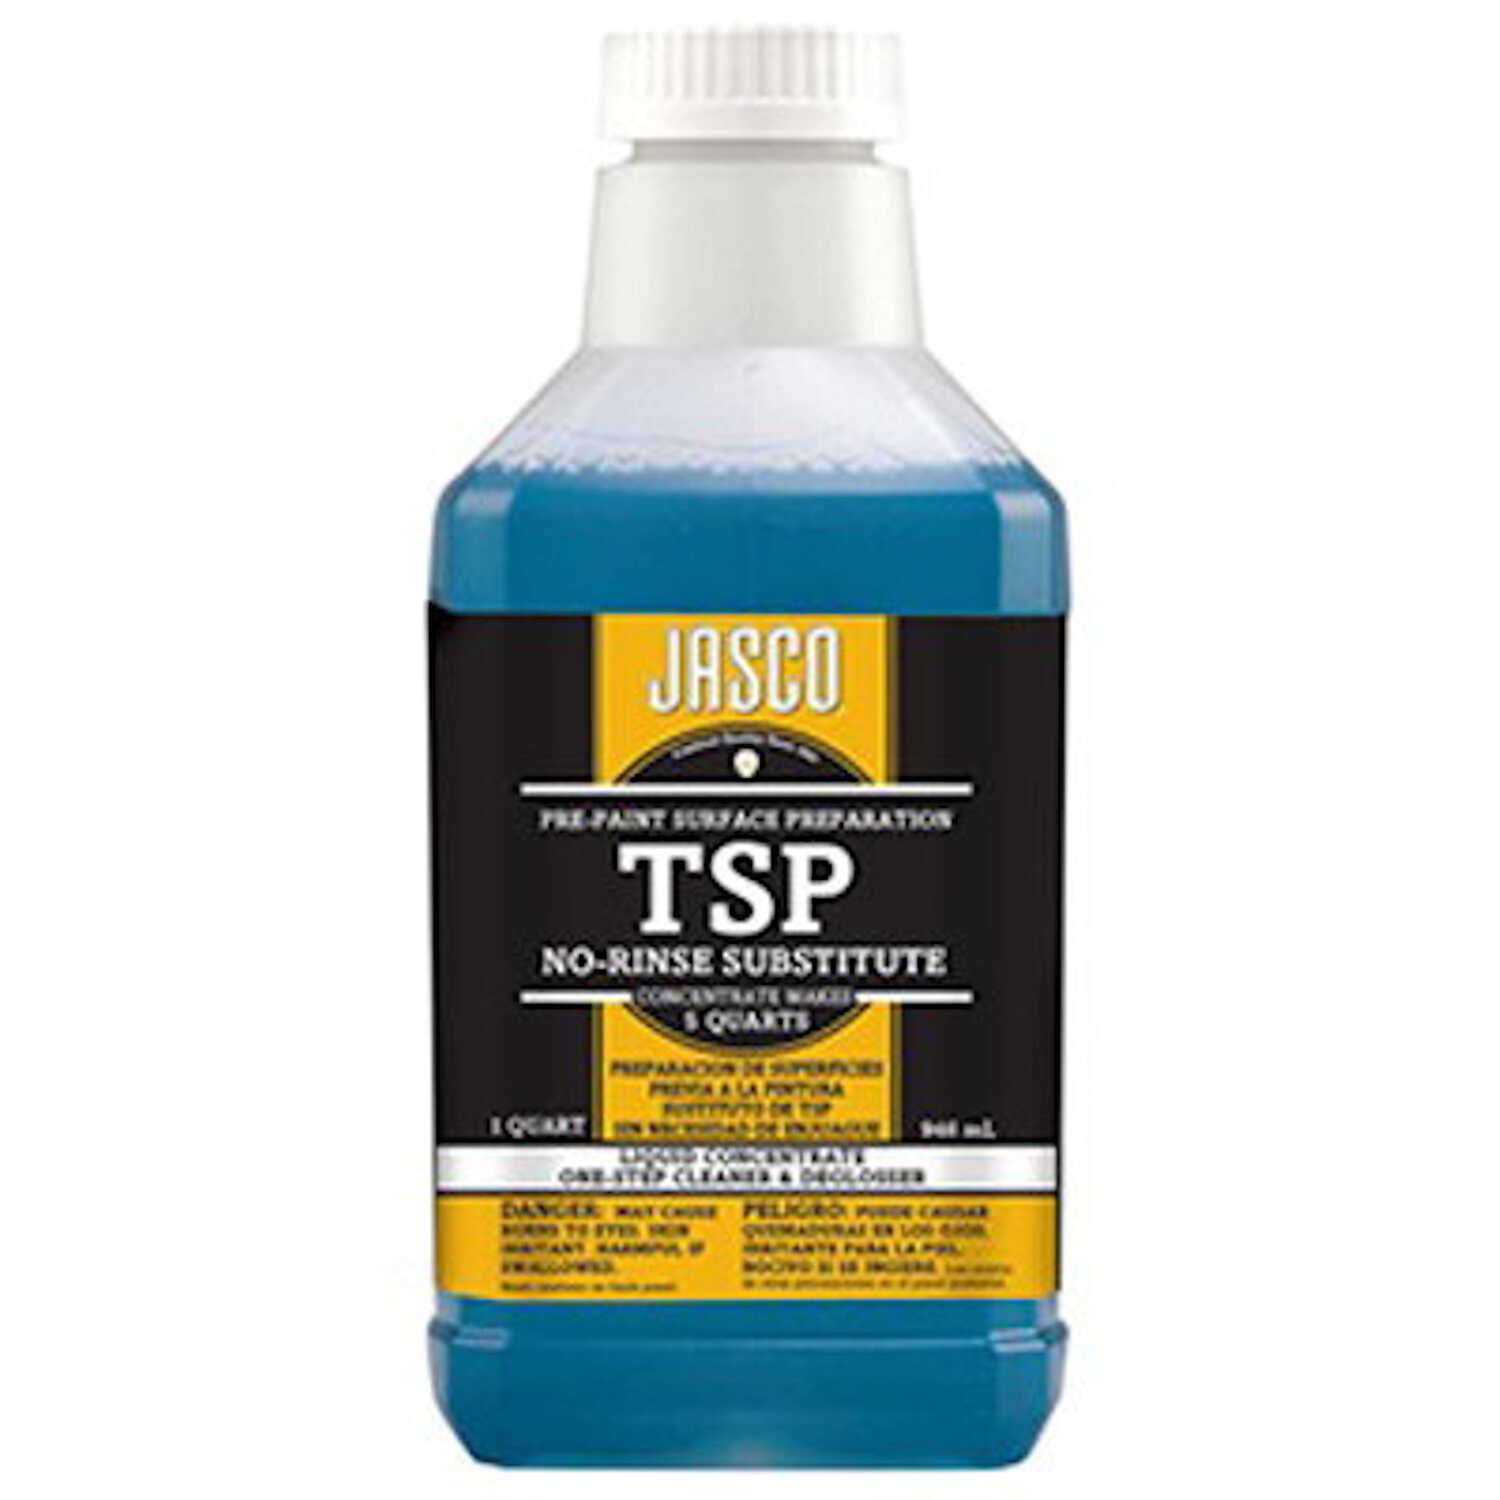 Jasco No Scent Cleaner and Degreaser 1 qt  Liquid - Ace Hardware